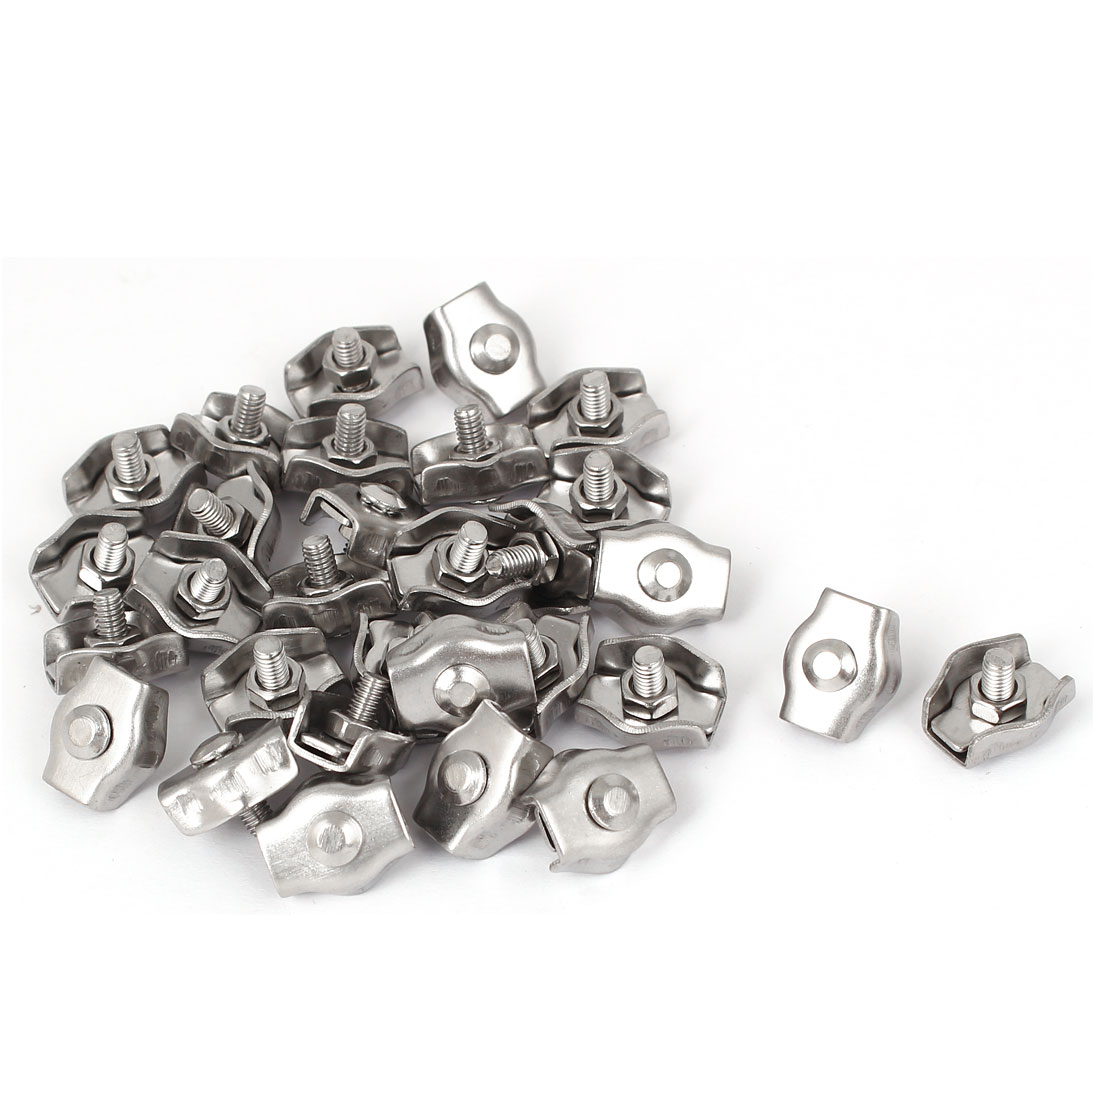 Stainless Steel Simplex Single Bolt Clip Cable Clamp 30 Pcs for 3mm Wire Rope